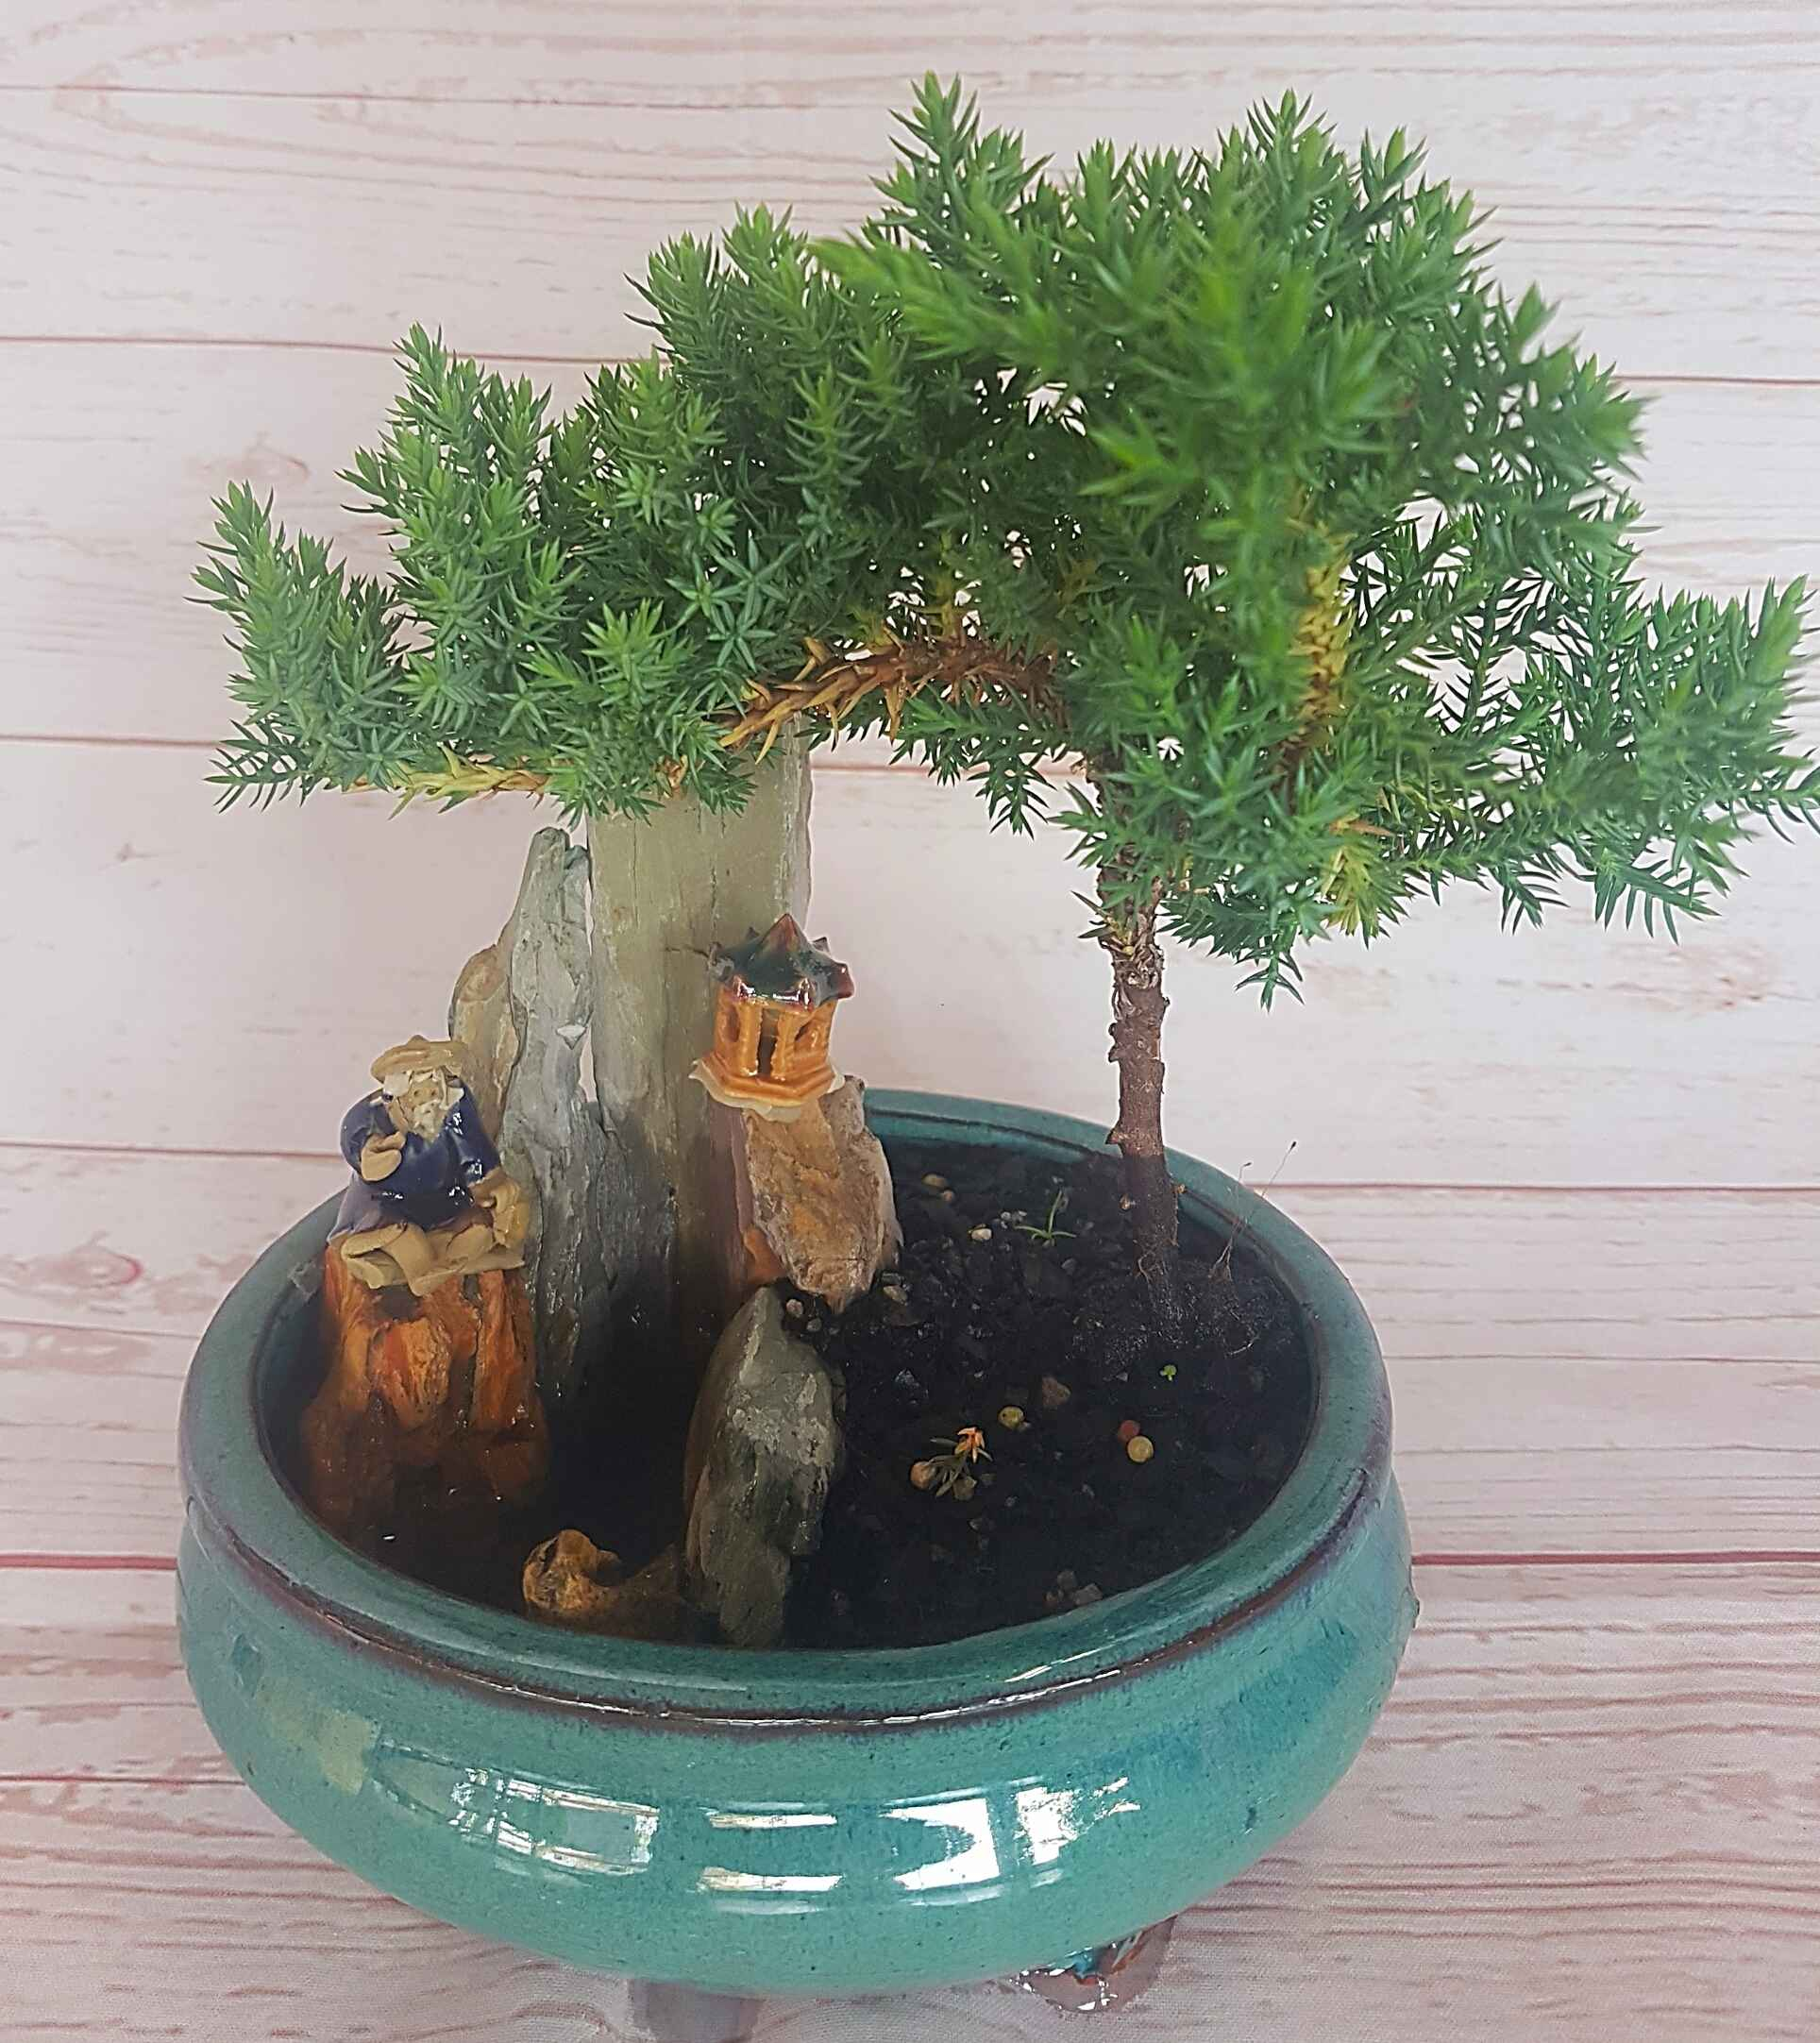 Juniper, a serene bonsai, 21cm in height,  presented in a novel ceramic container, purchased from Bonsai grower Sam Chen.  A welcomed addition to a garden, information sheet provided.